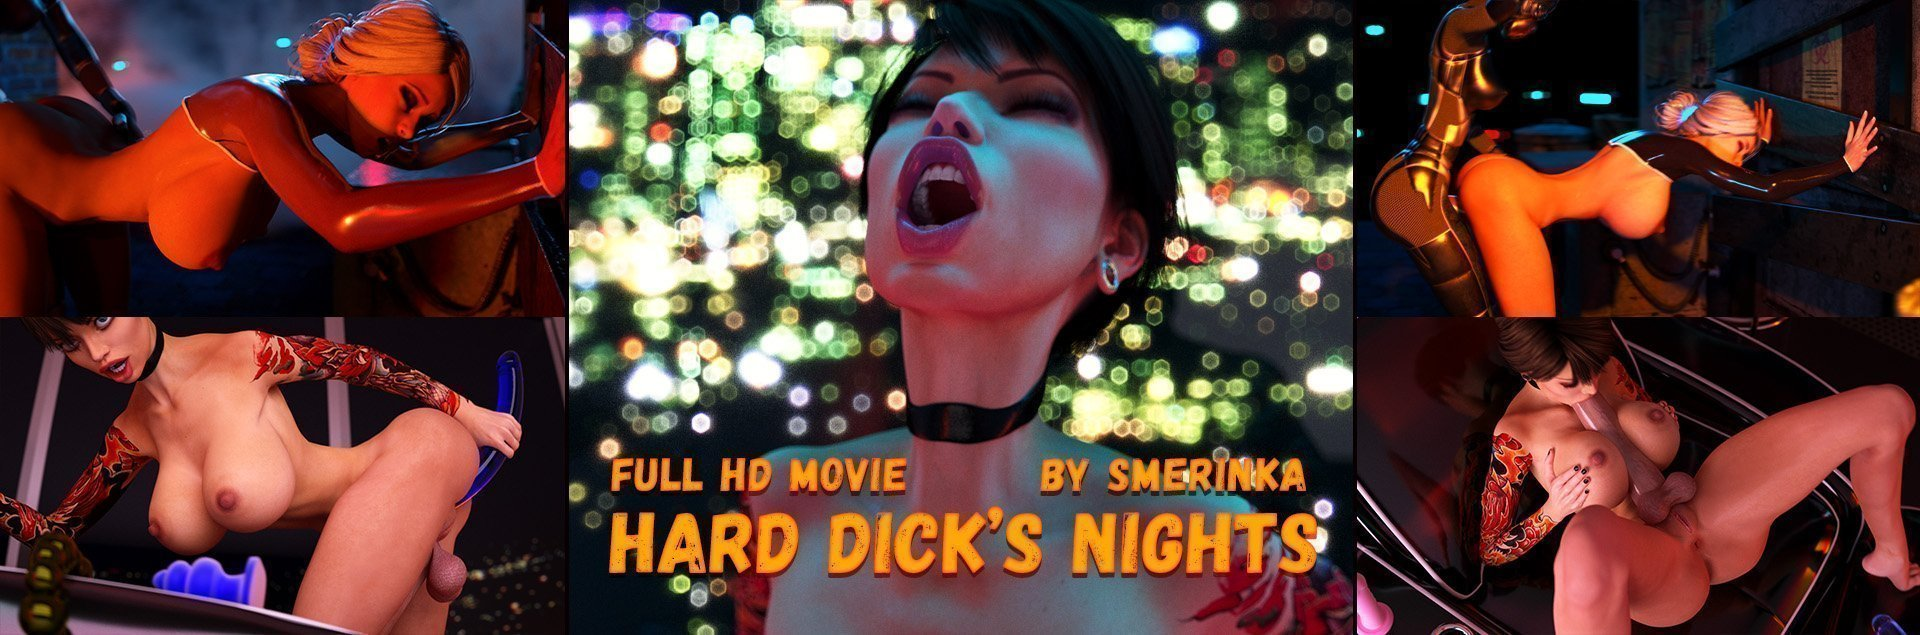 Smerinka's animated Hard Dick's Nights